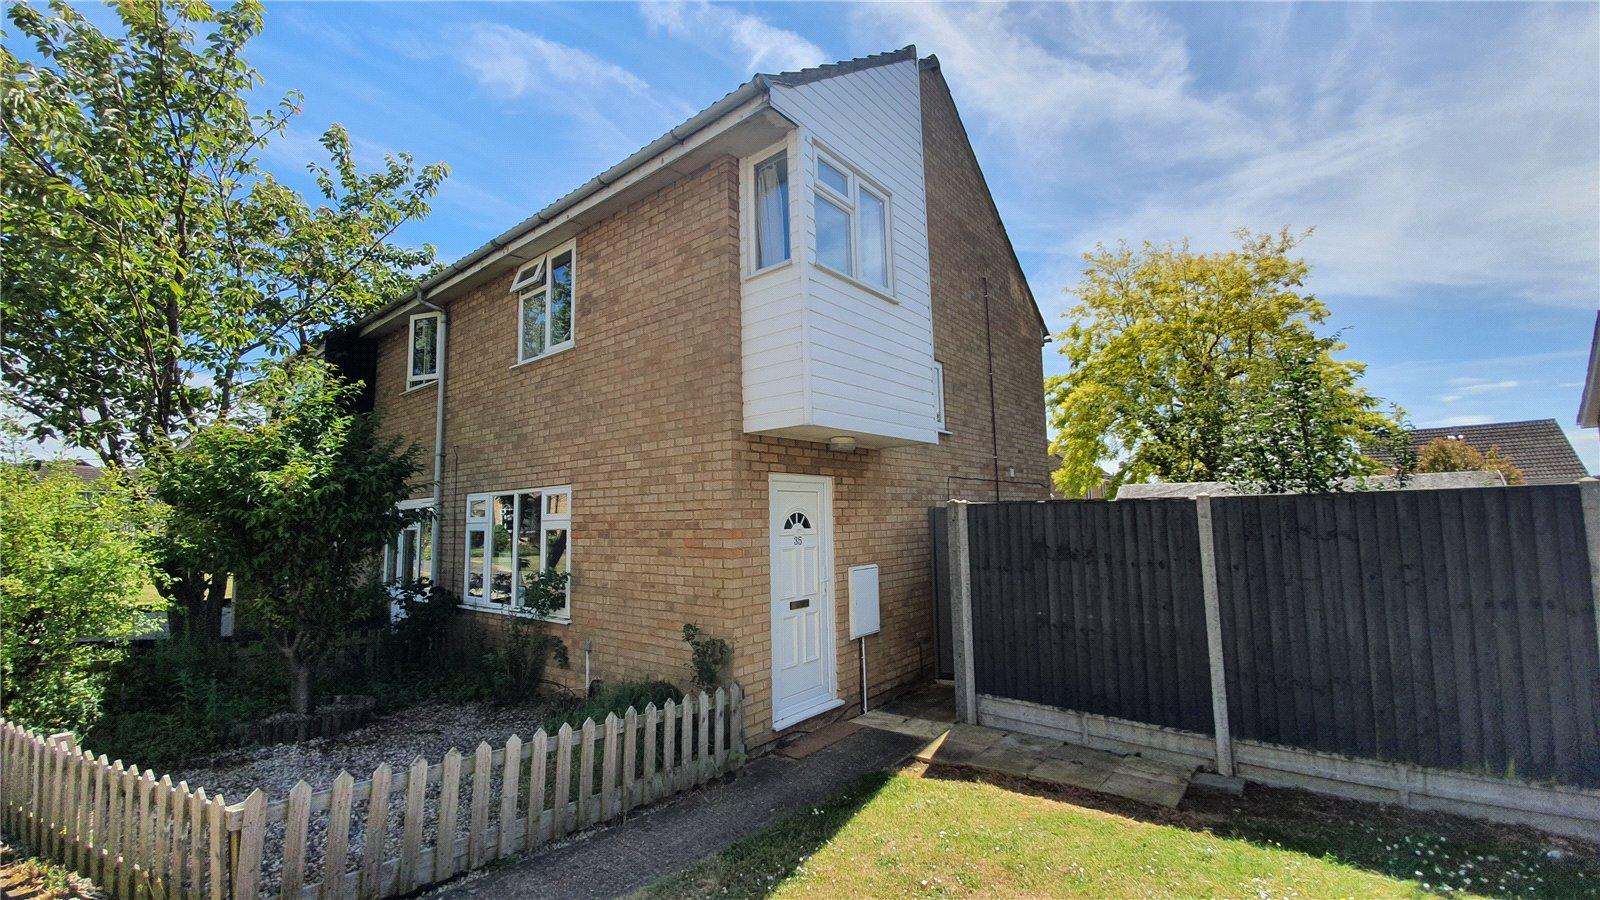 3 bed house for sale in Otter Way, Eaton Socon - Property Image 1